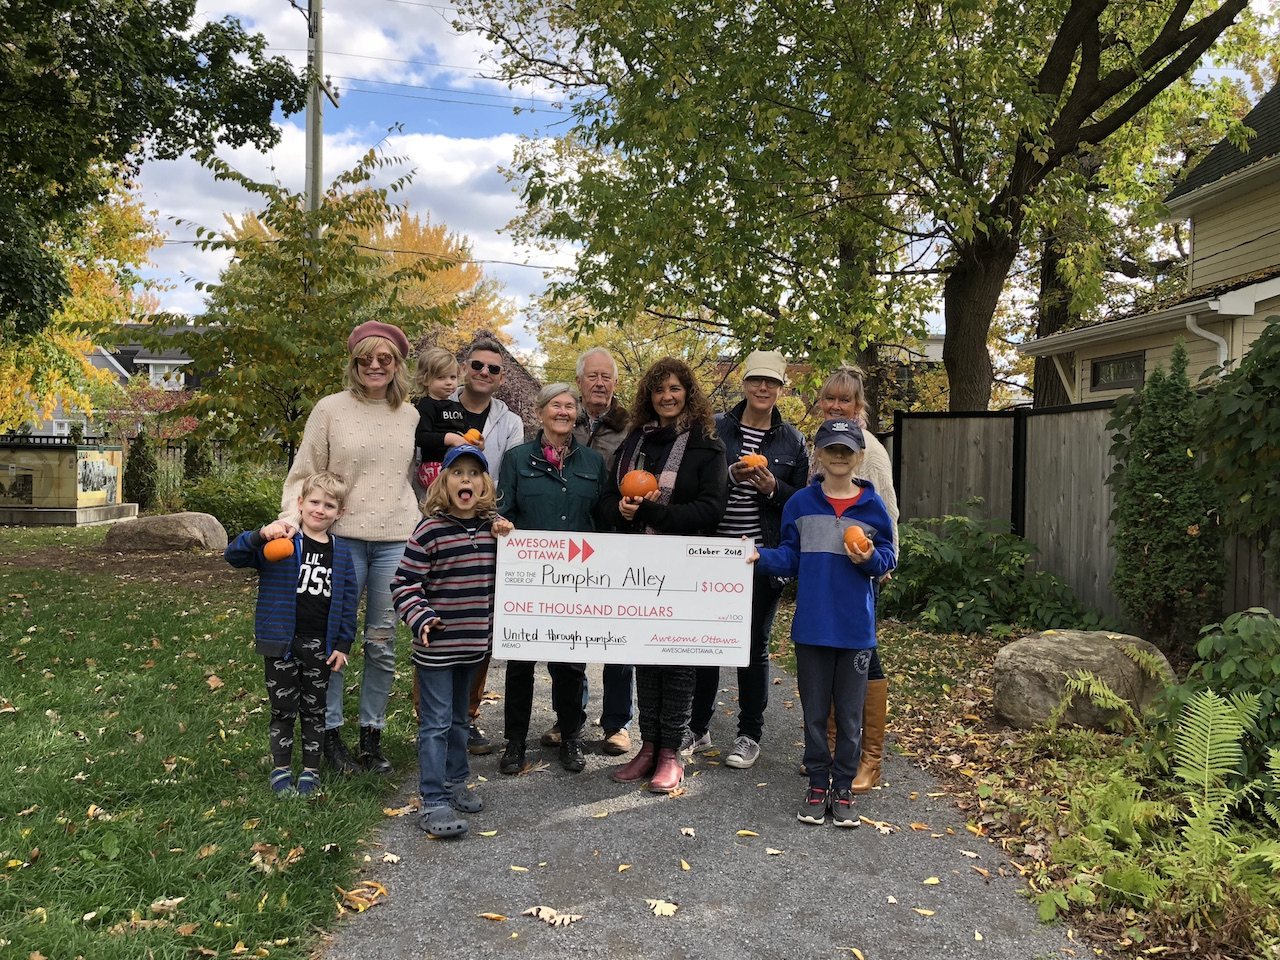 Finder is committed to editorial independence. Photos: Awesome Ottawa's October grant supports Pumpkin Alley - Apartment613